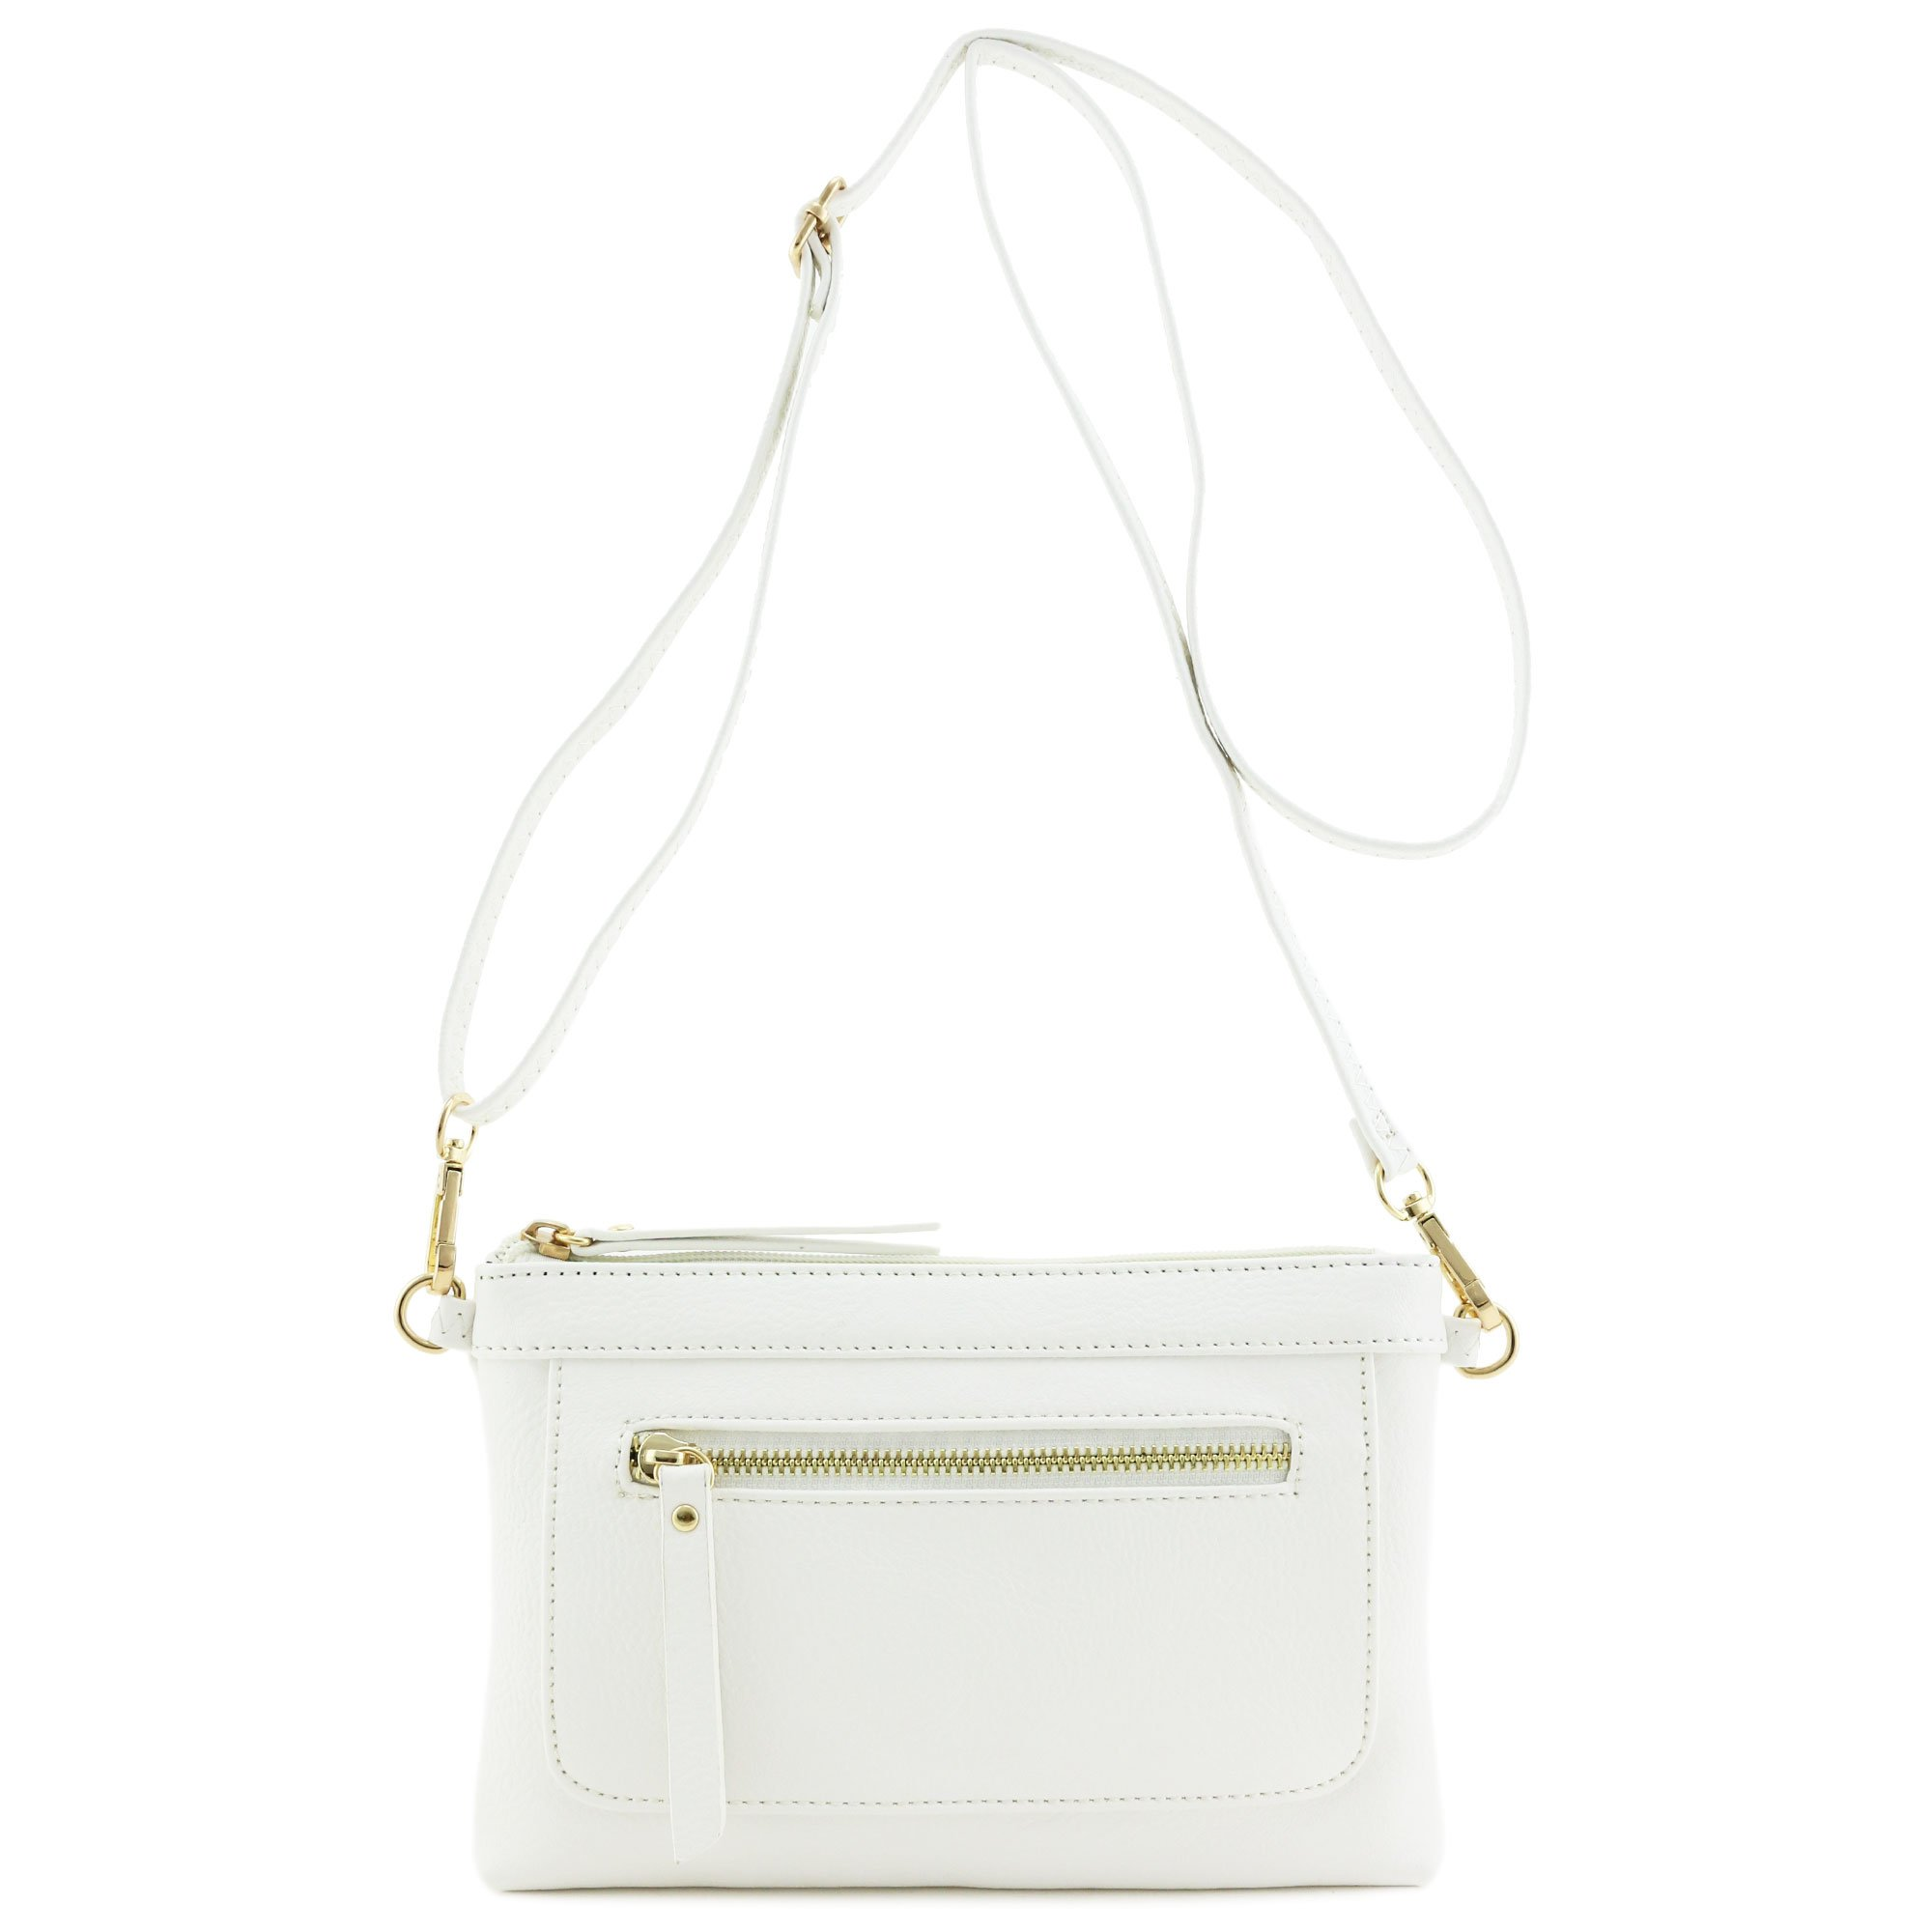 Multi-functional Wristlet Clutch and Crossbody Bag White